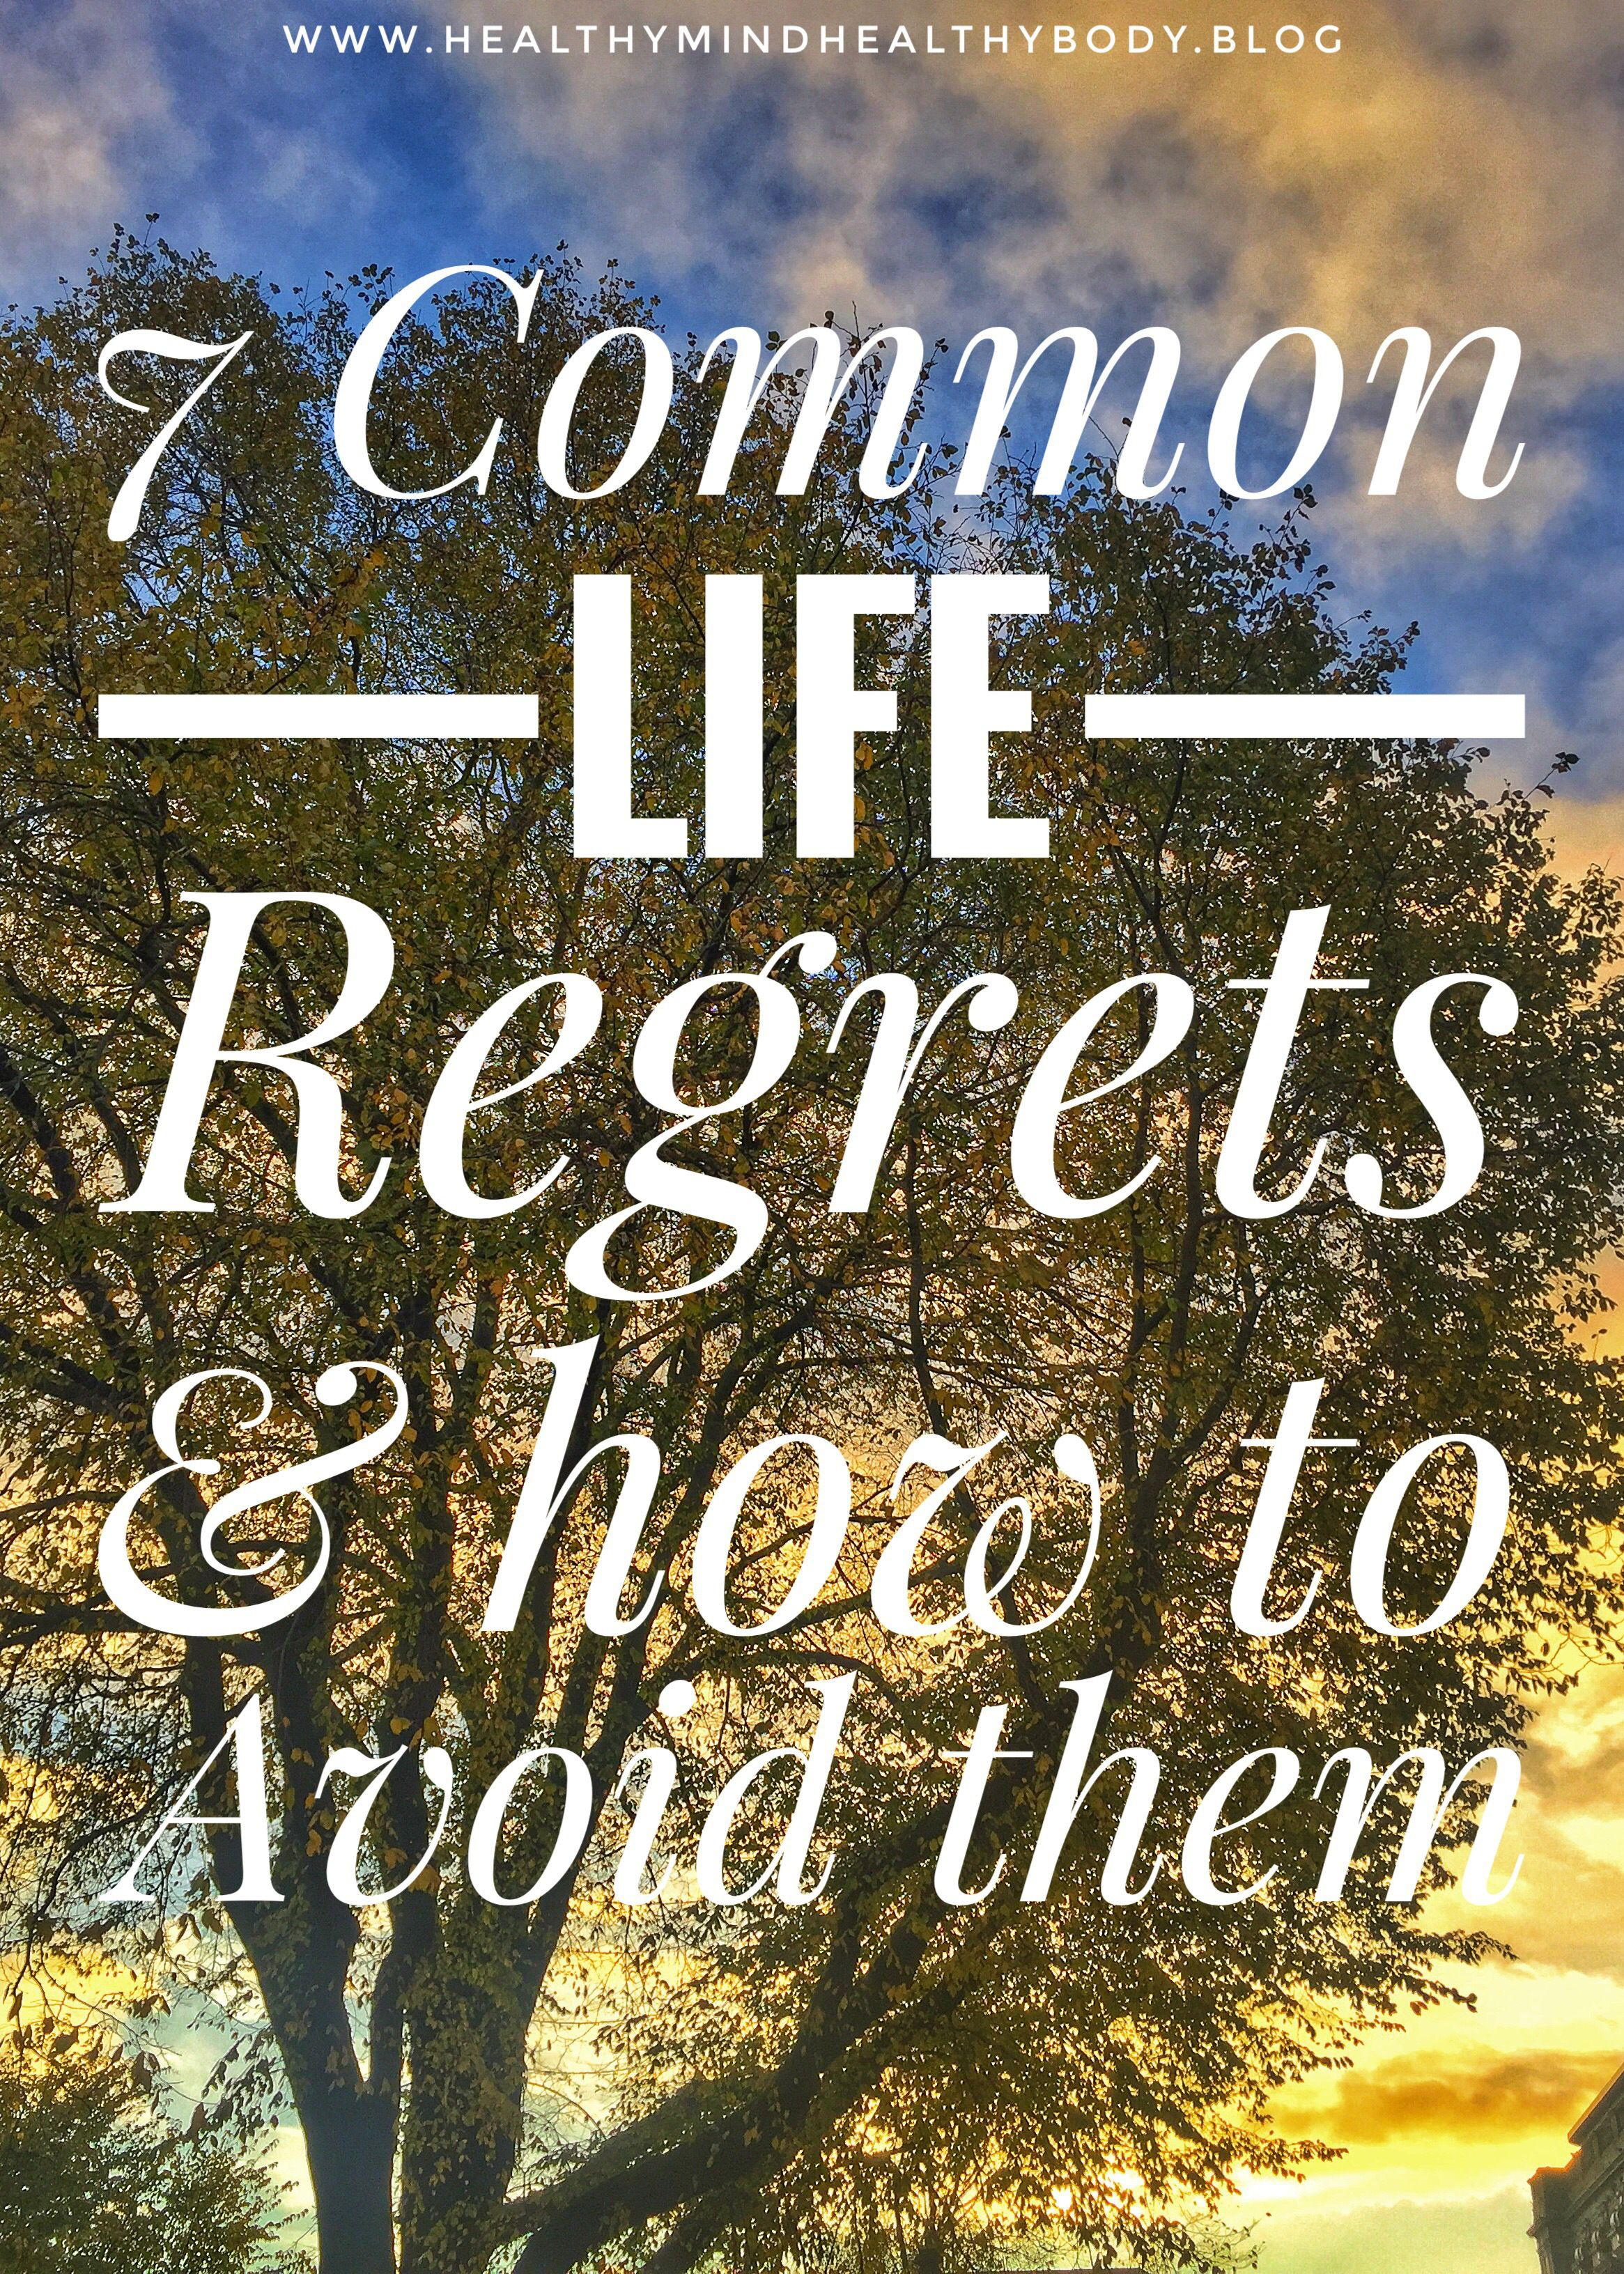 Healthy Life Quotes 7 Common Life Regrets And How To Avoid Them  Healthy Mind